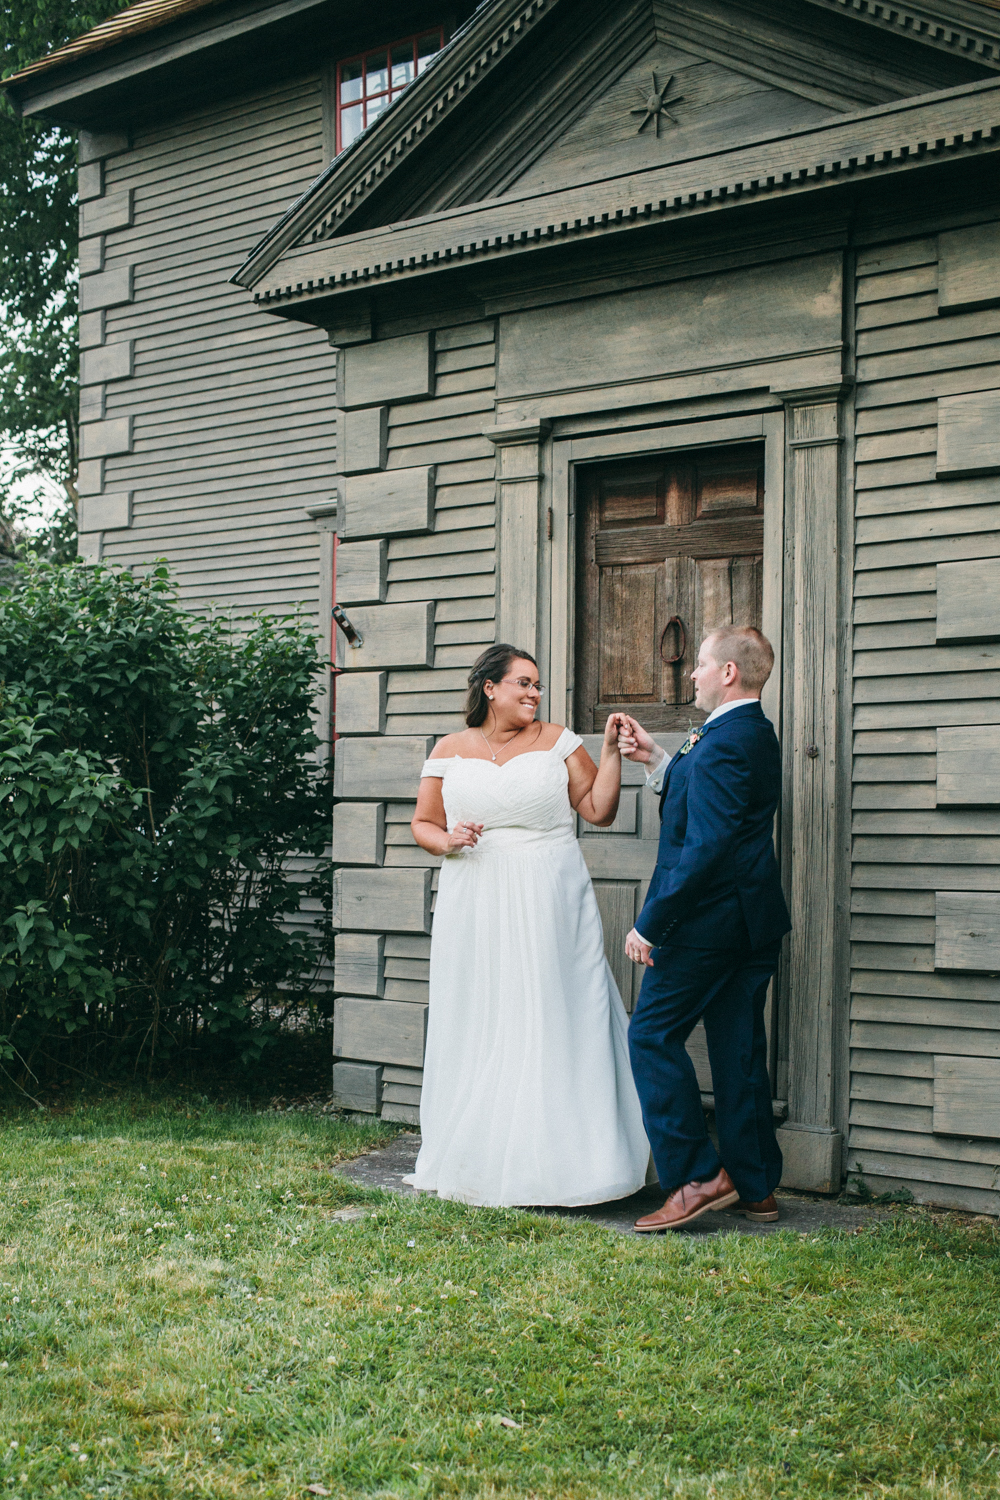 Jill & Gabe Plymouth Wedding Photography-117.jpg